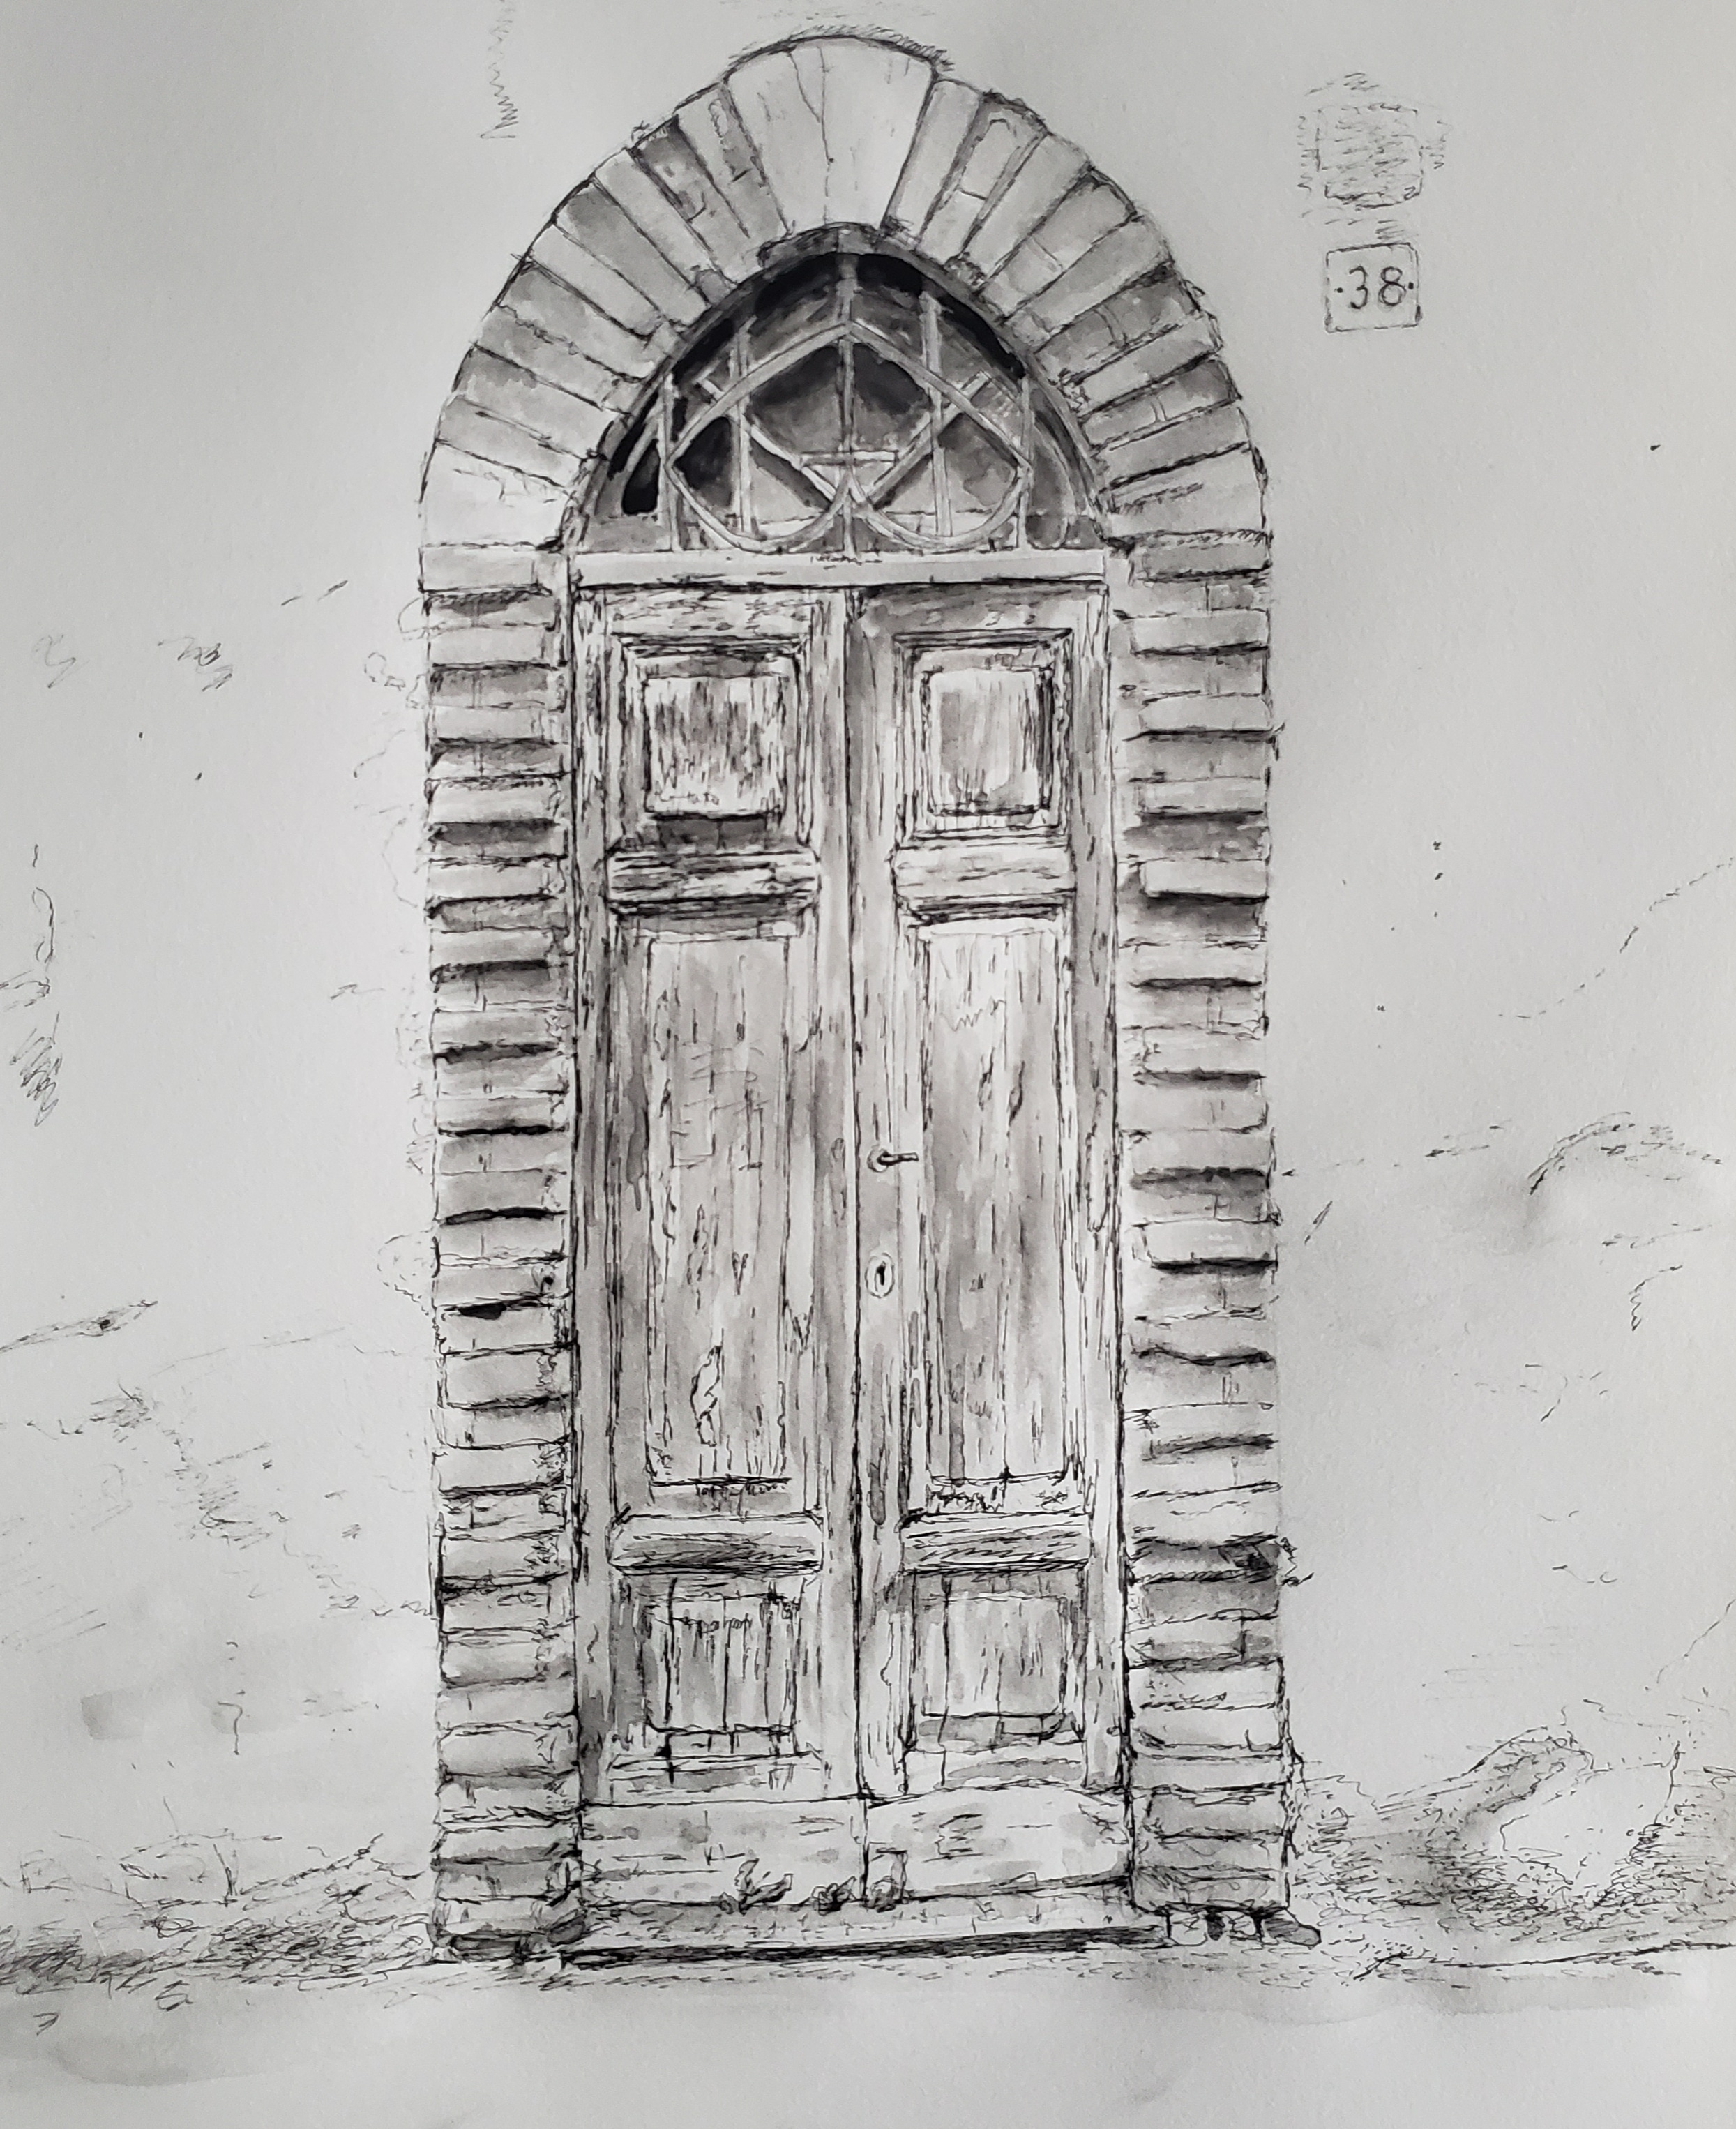 Old Door in Lombardia #2; pen and ink; 2019